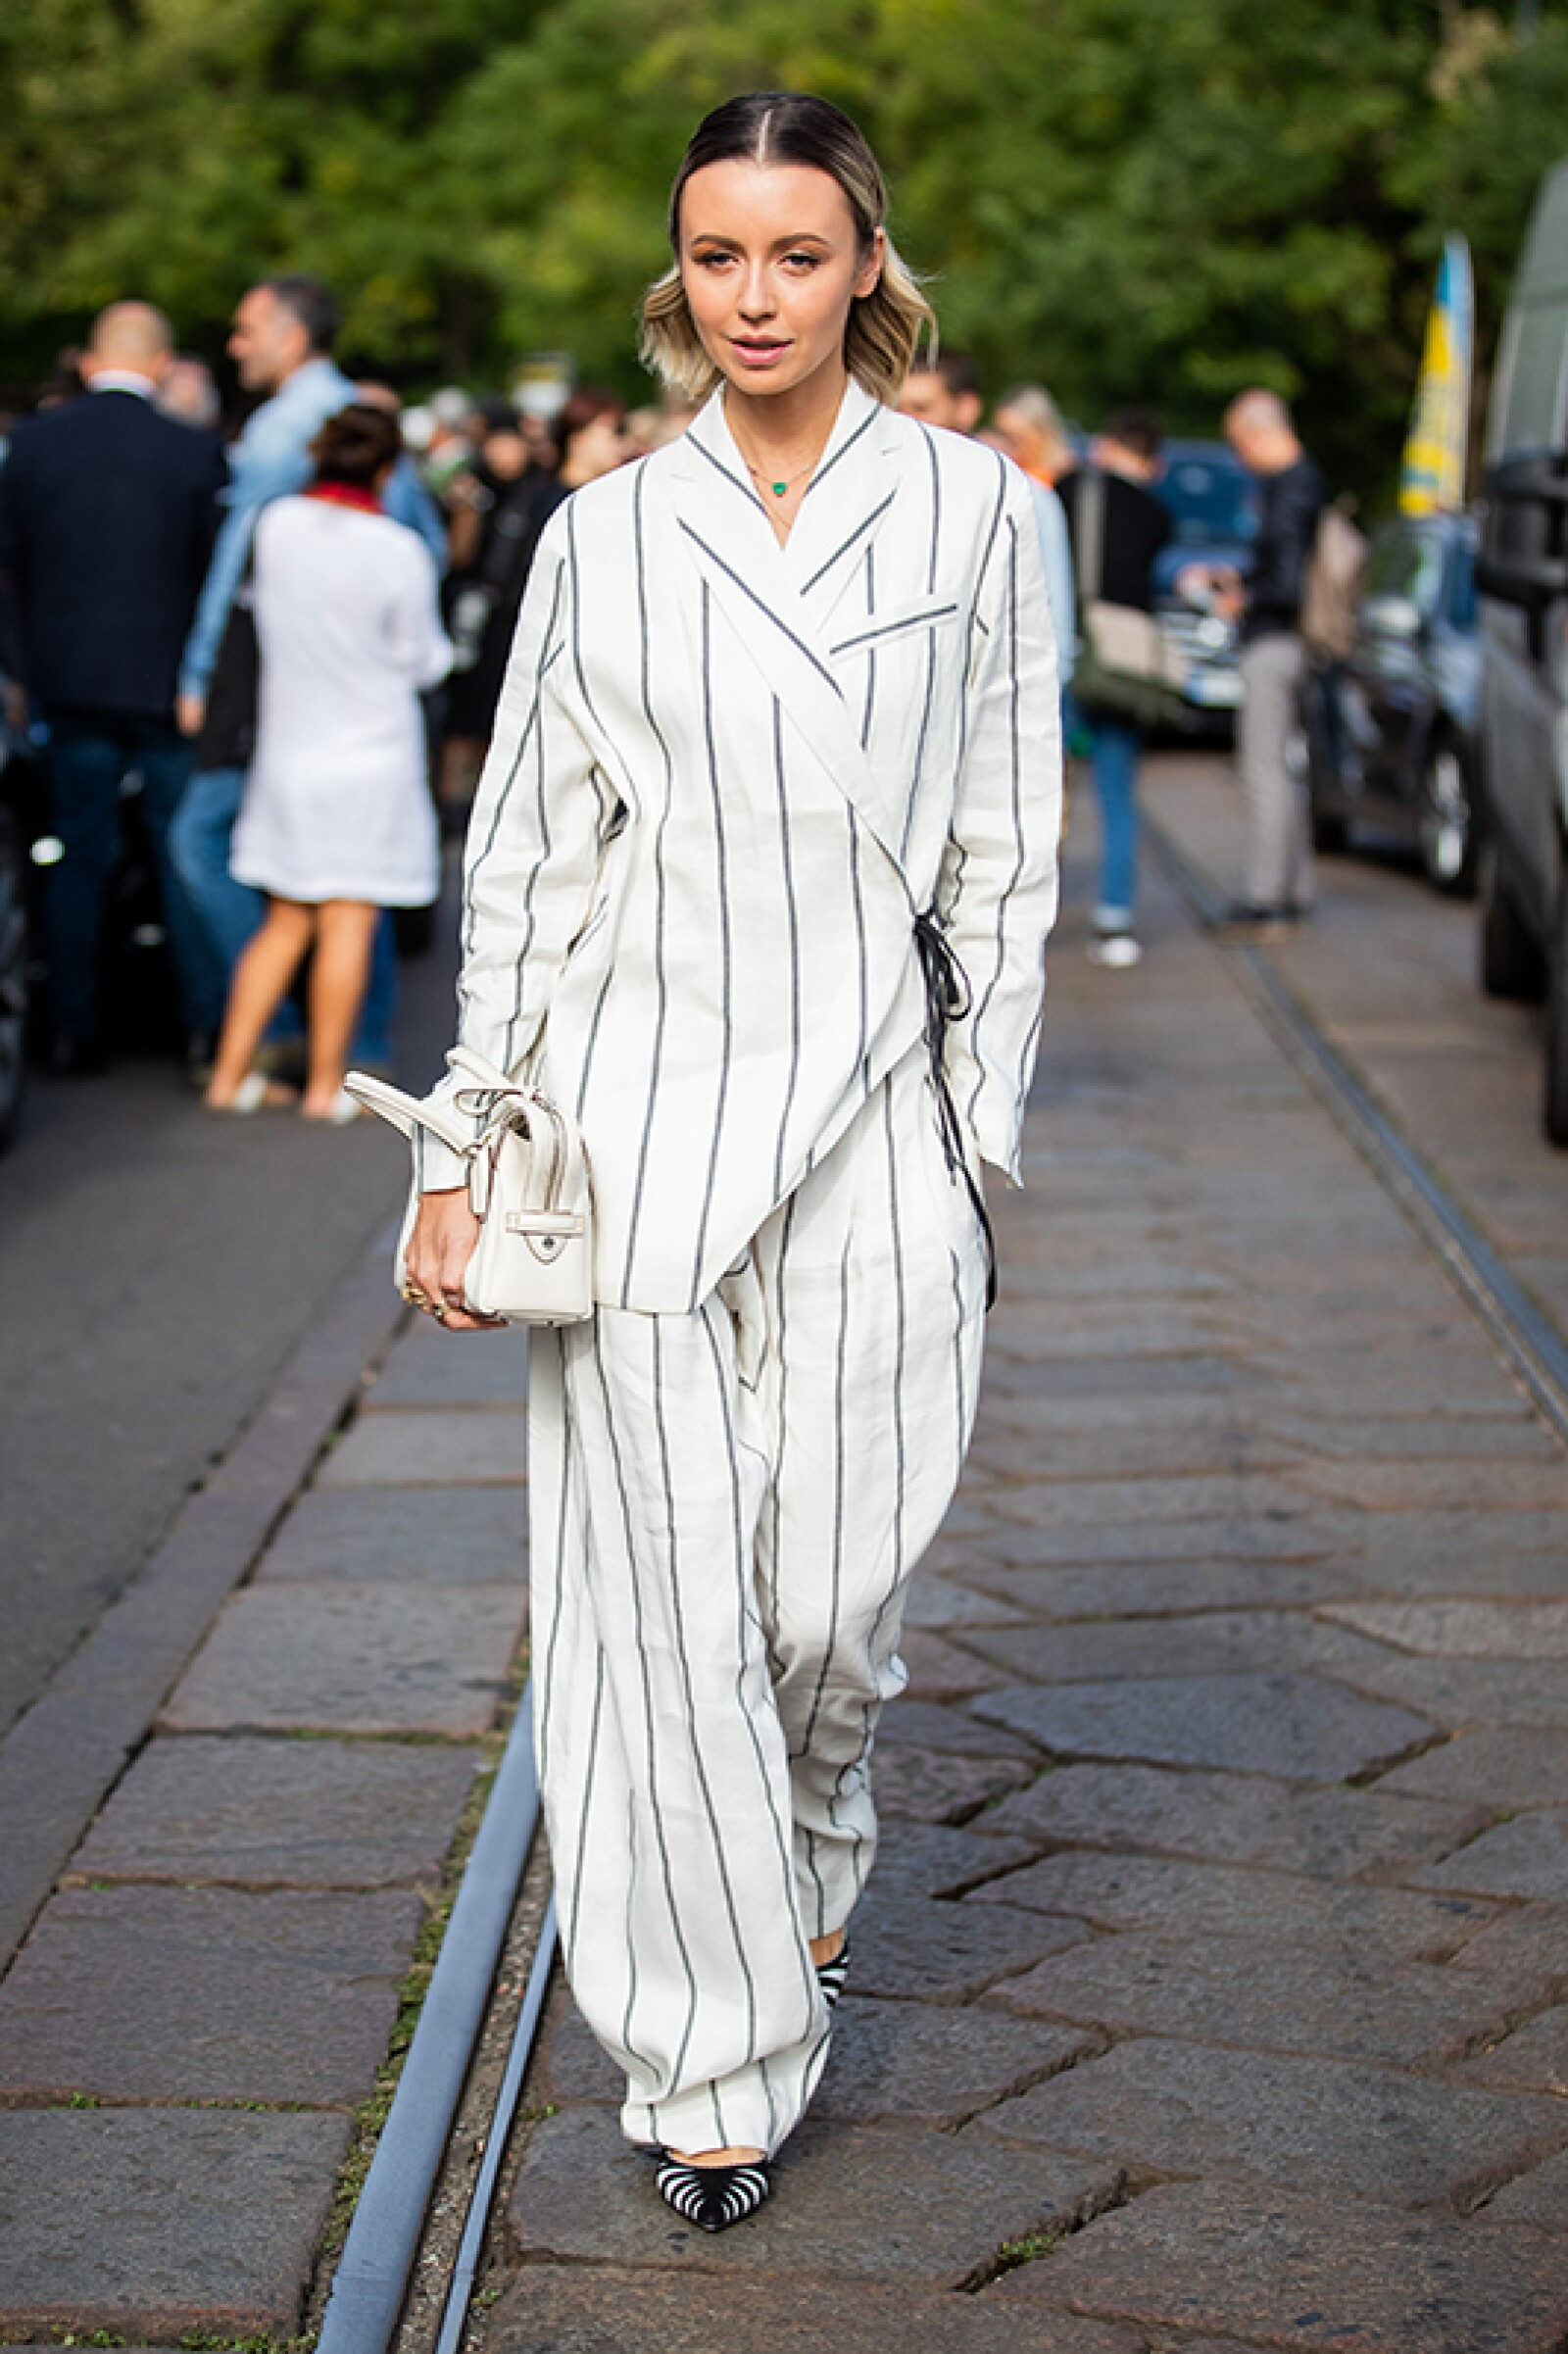 Street Style: September 20 - Milan Fashion Week Spring/Summer 2020